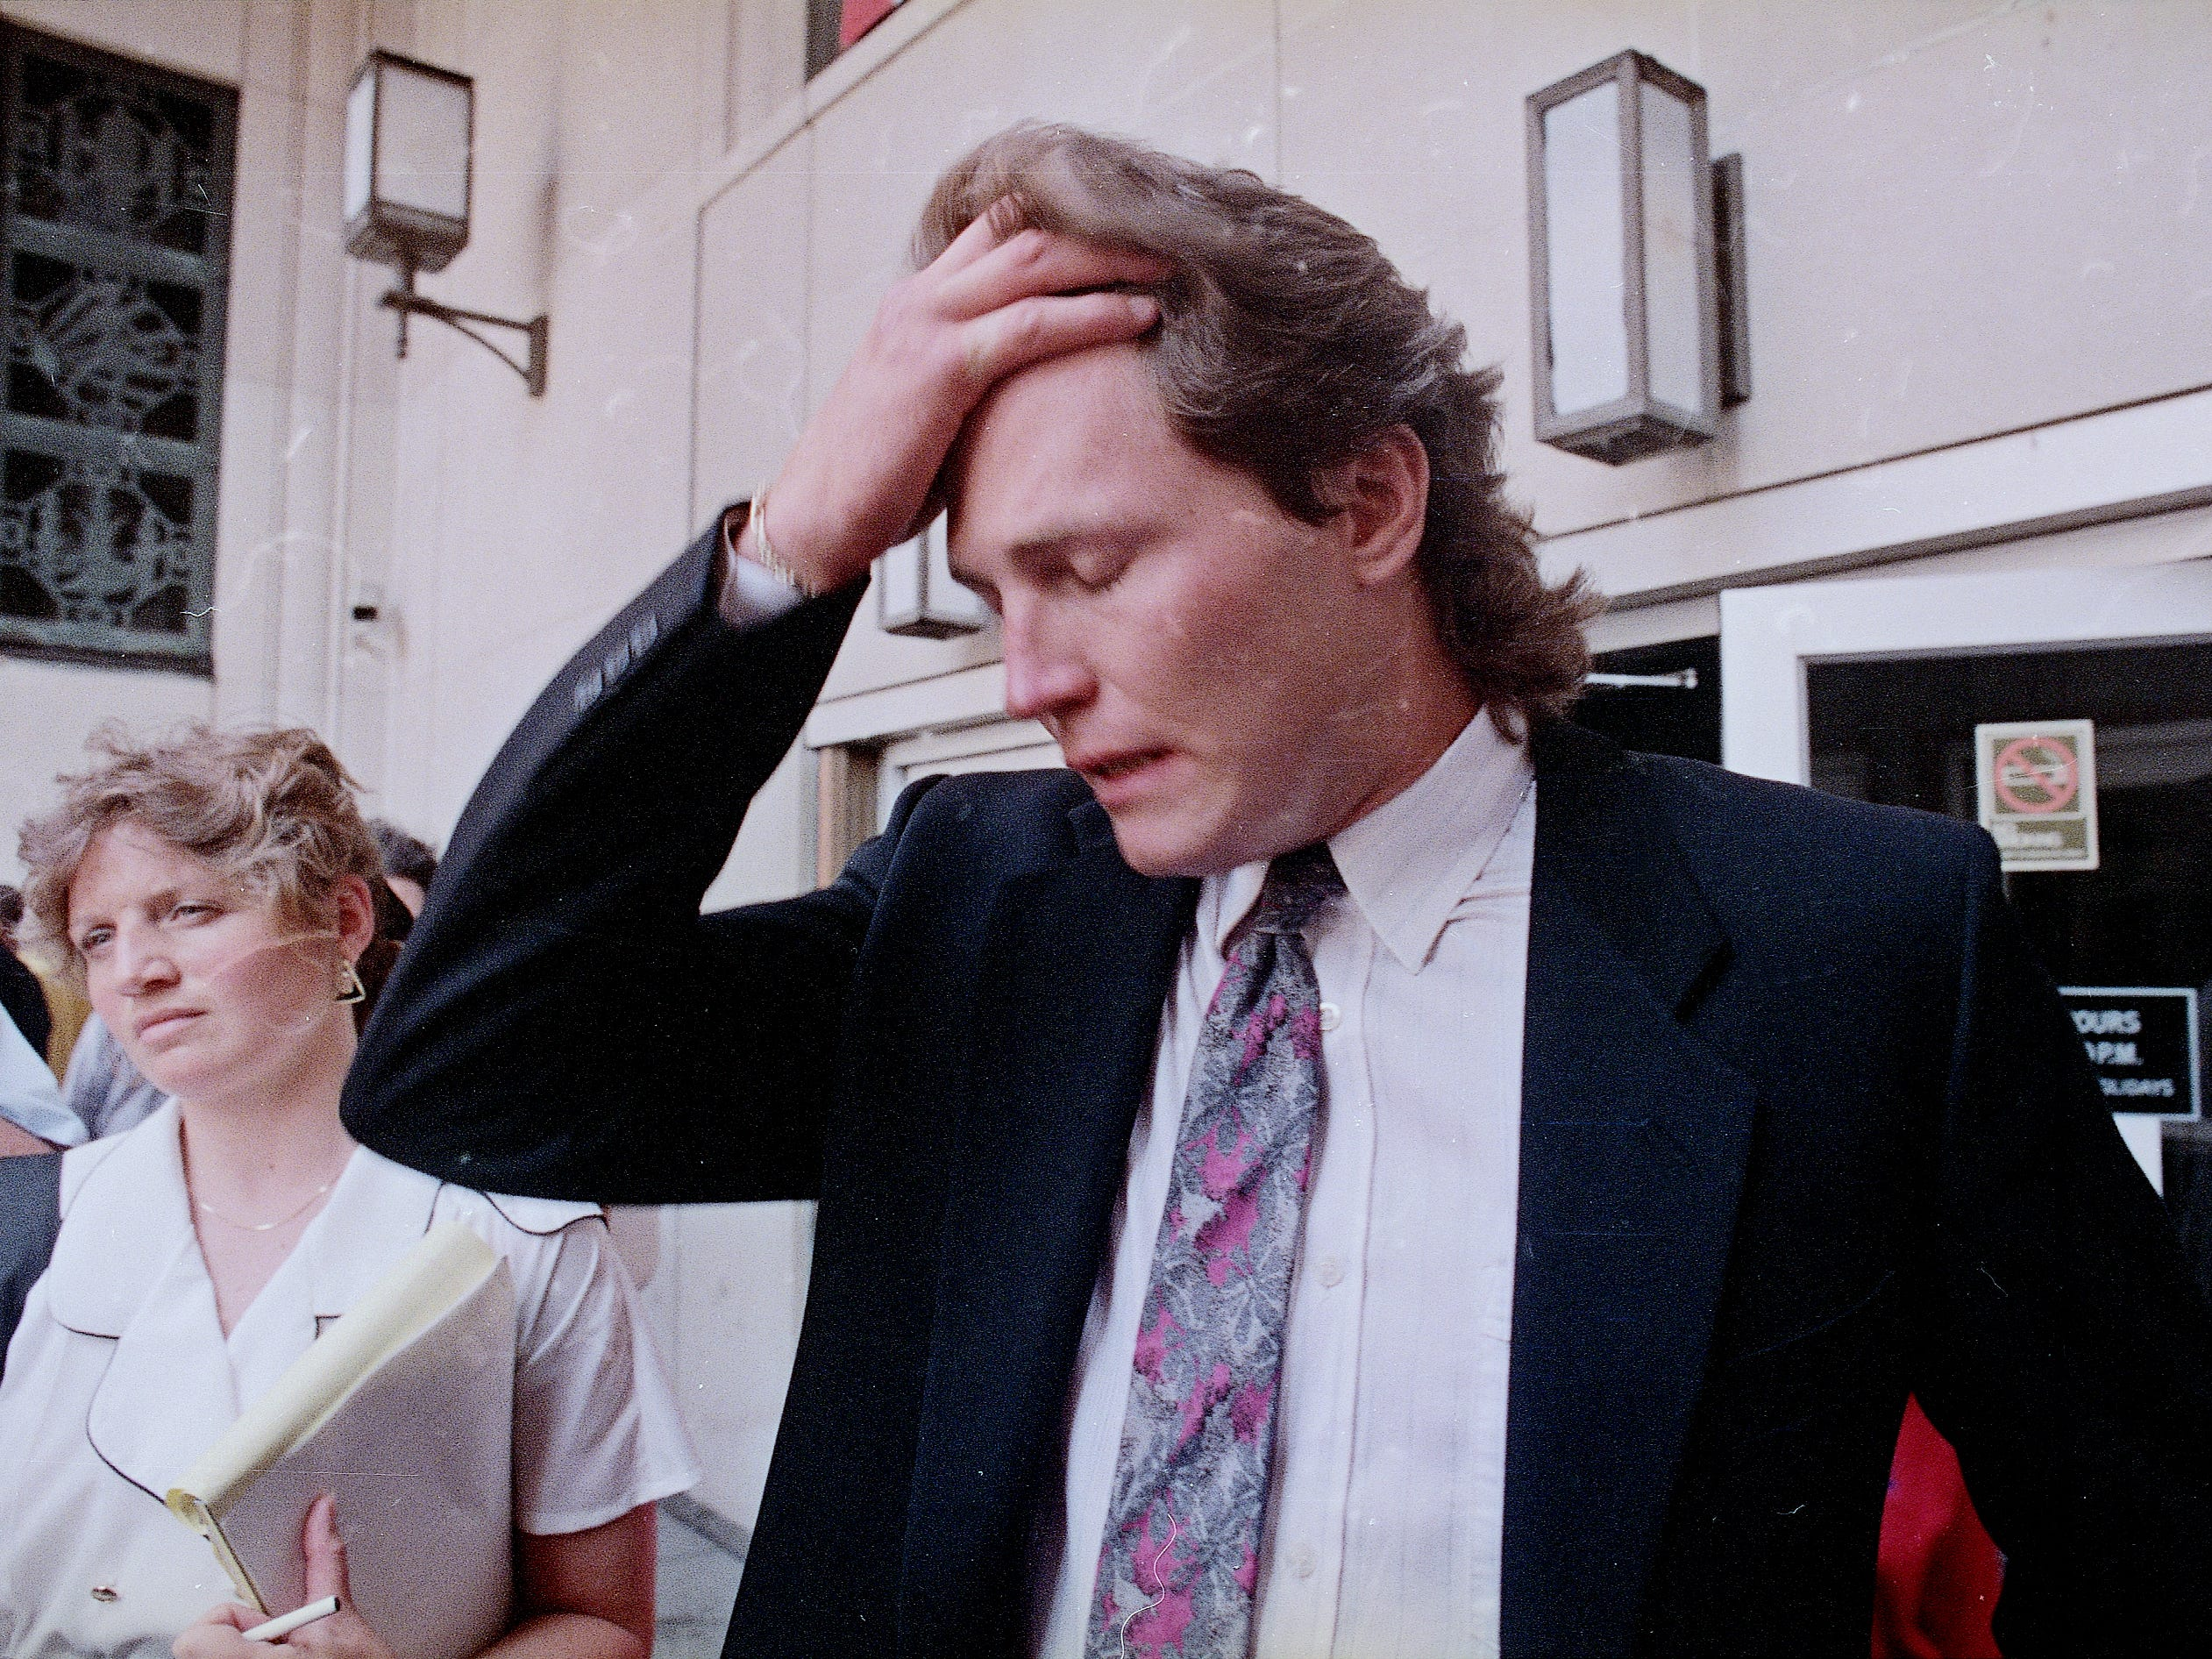 Bob Probert talks to reporters on the steps of federal courthouse in Detroit after pleading guilty to cocaine possession on July 18, 1989.